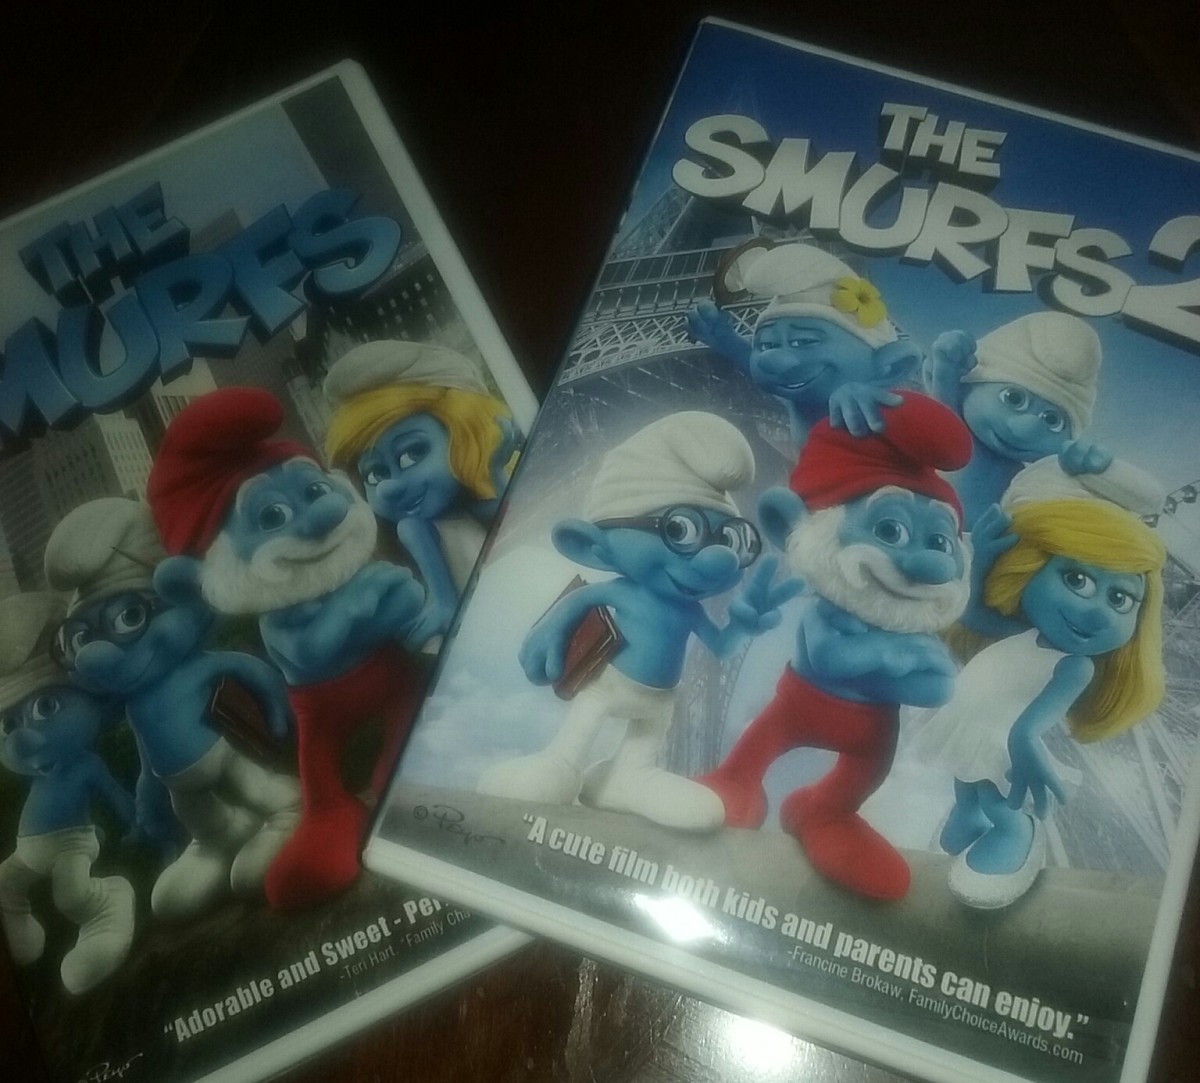 Movie Reviews for The Smurfs the Movie (2011) and The Smurfs 2 the Movie (2013)